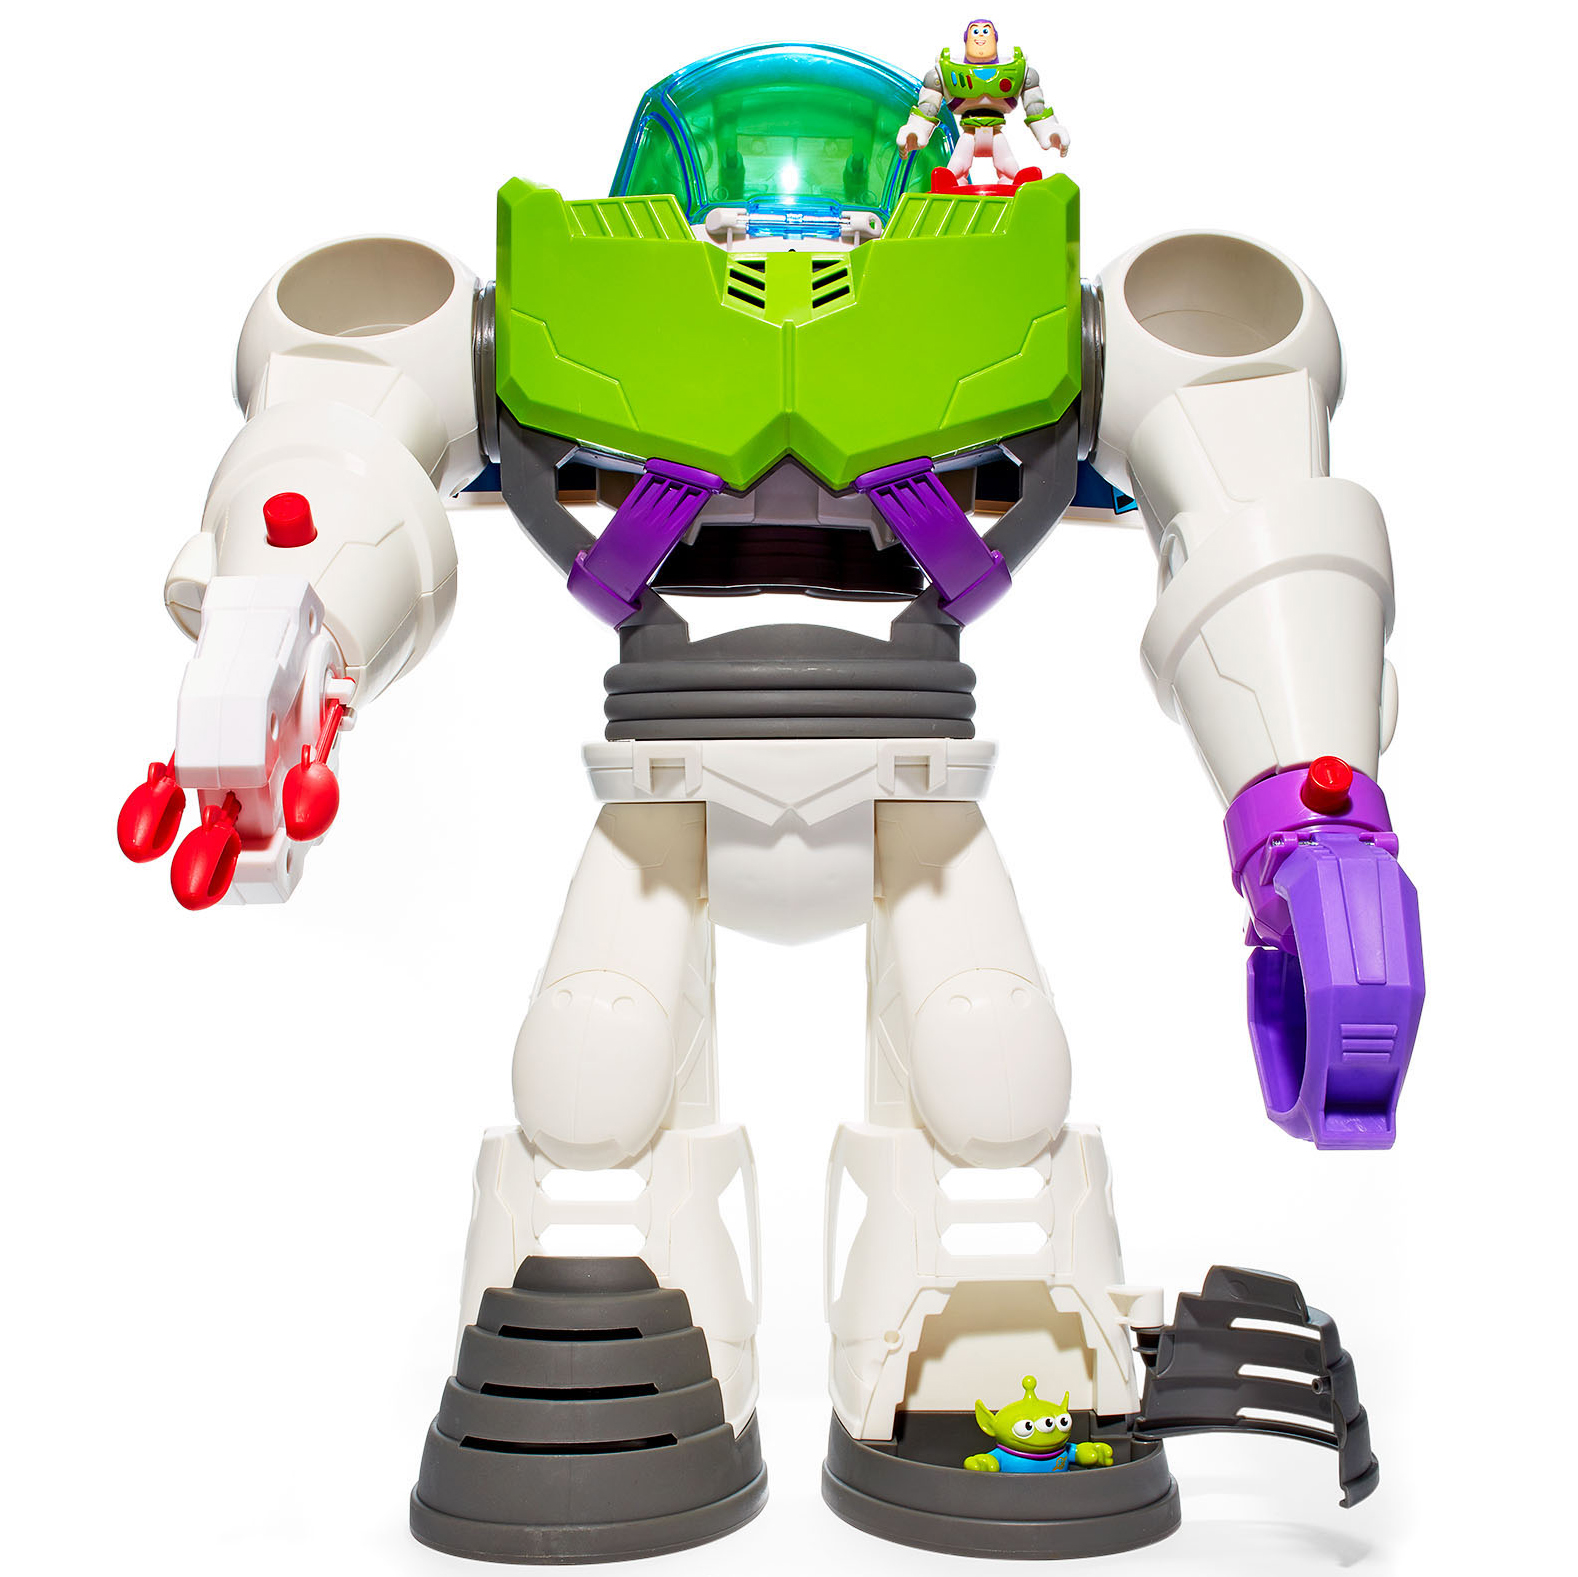 Fisher-Price Imaginext Toy Story 4 Buzz Bot